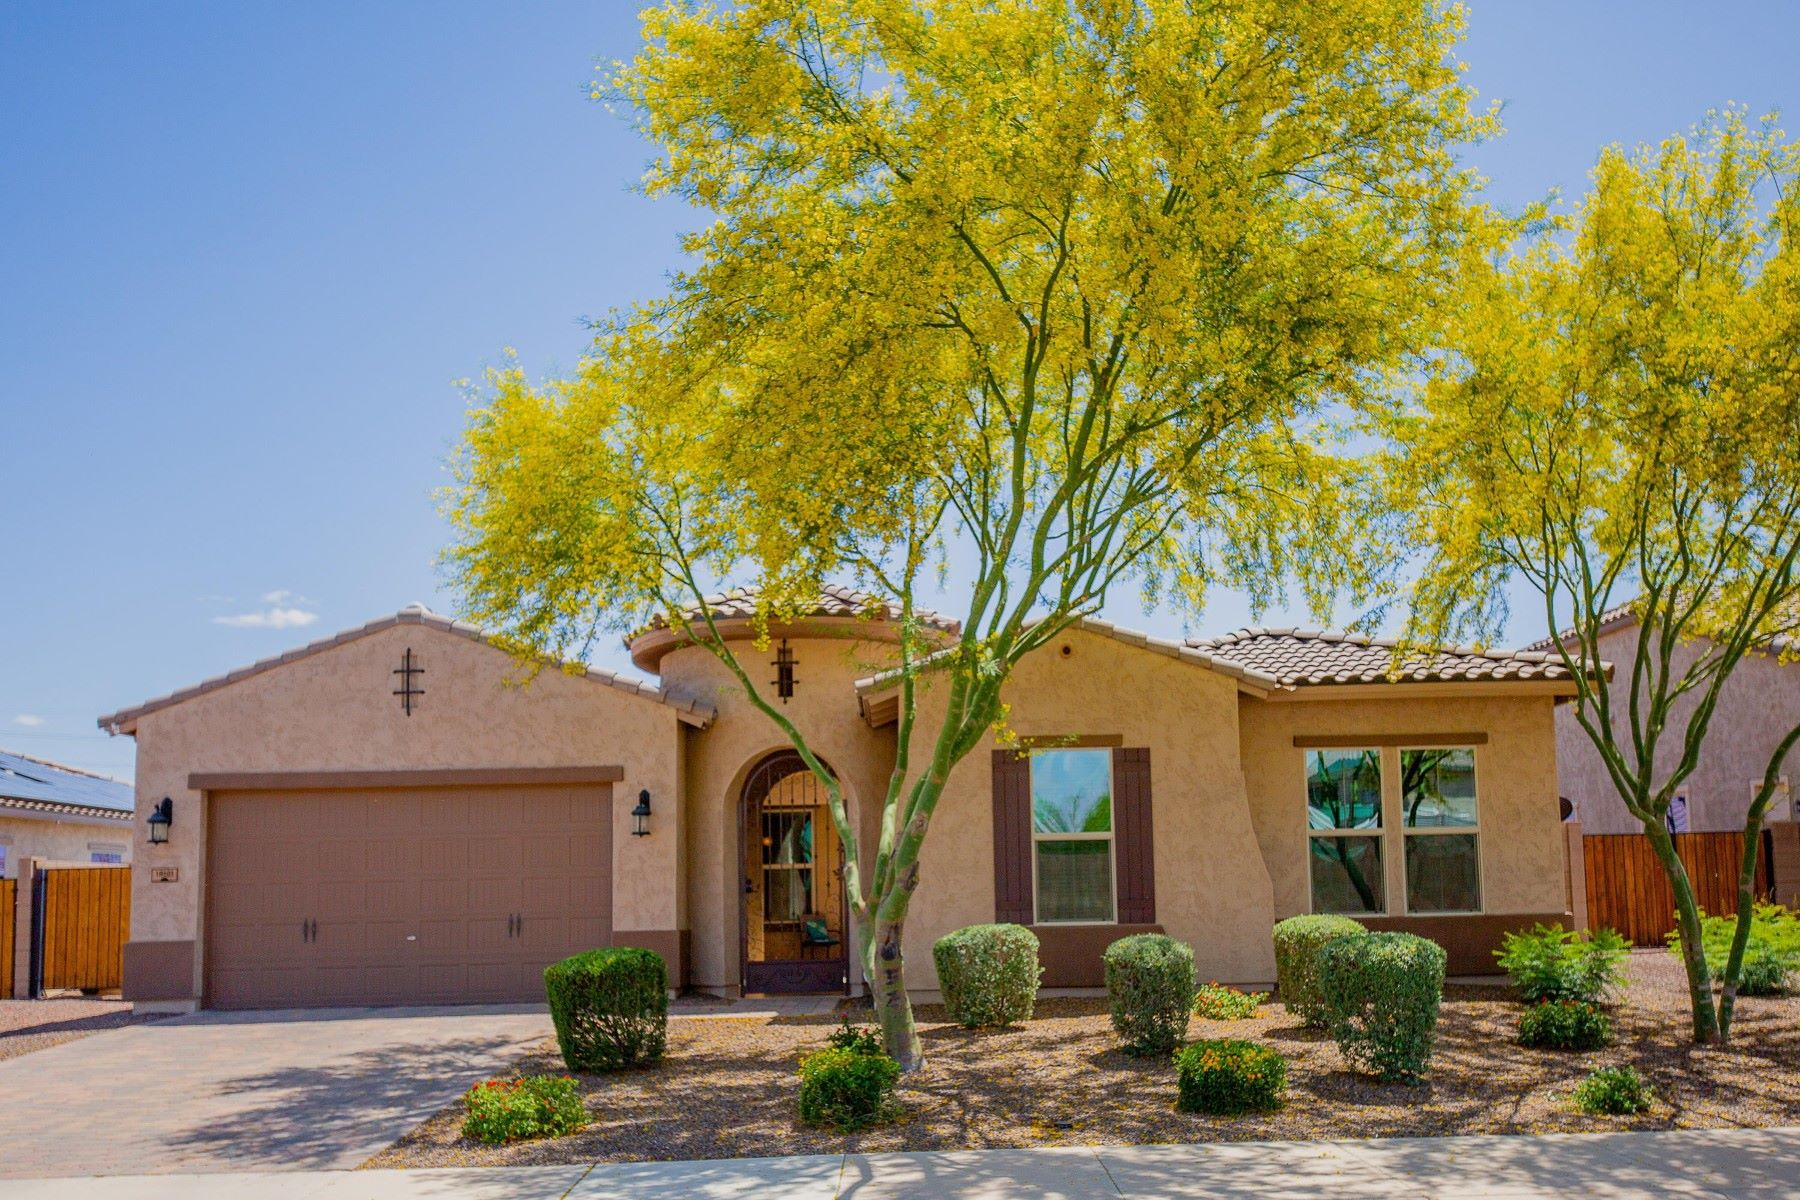 single family homes for Active at Sedella 18101 W MACKENZIE DR Goodyear, Arizona 85395 United States